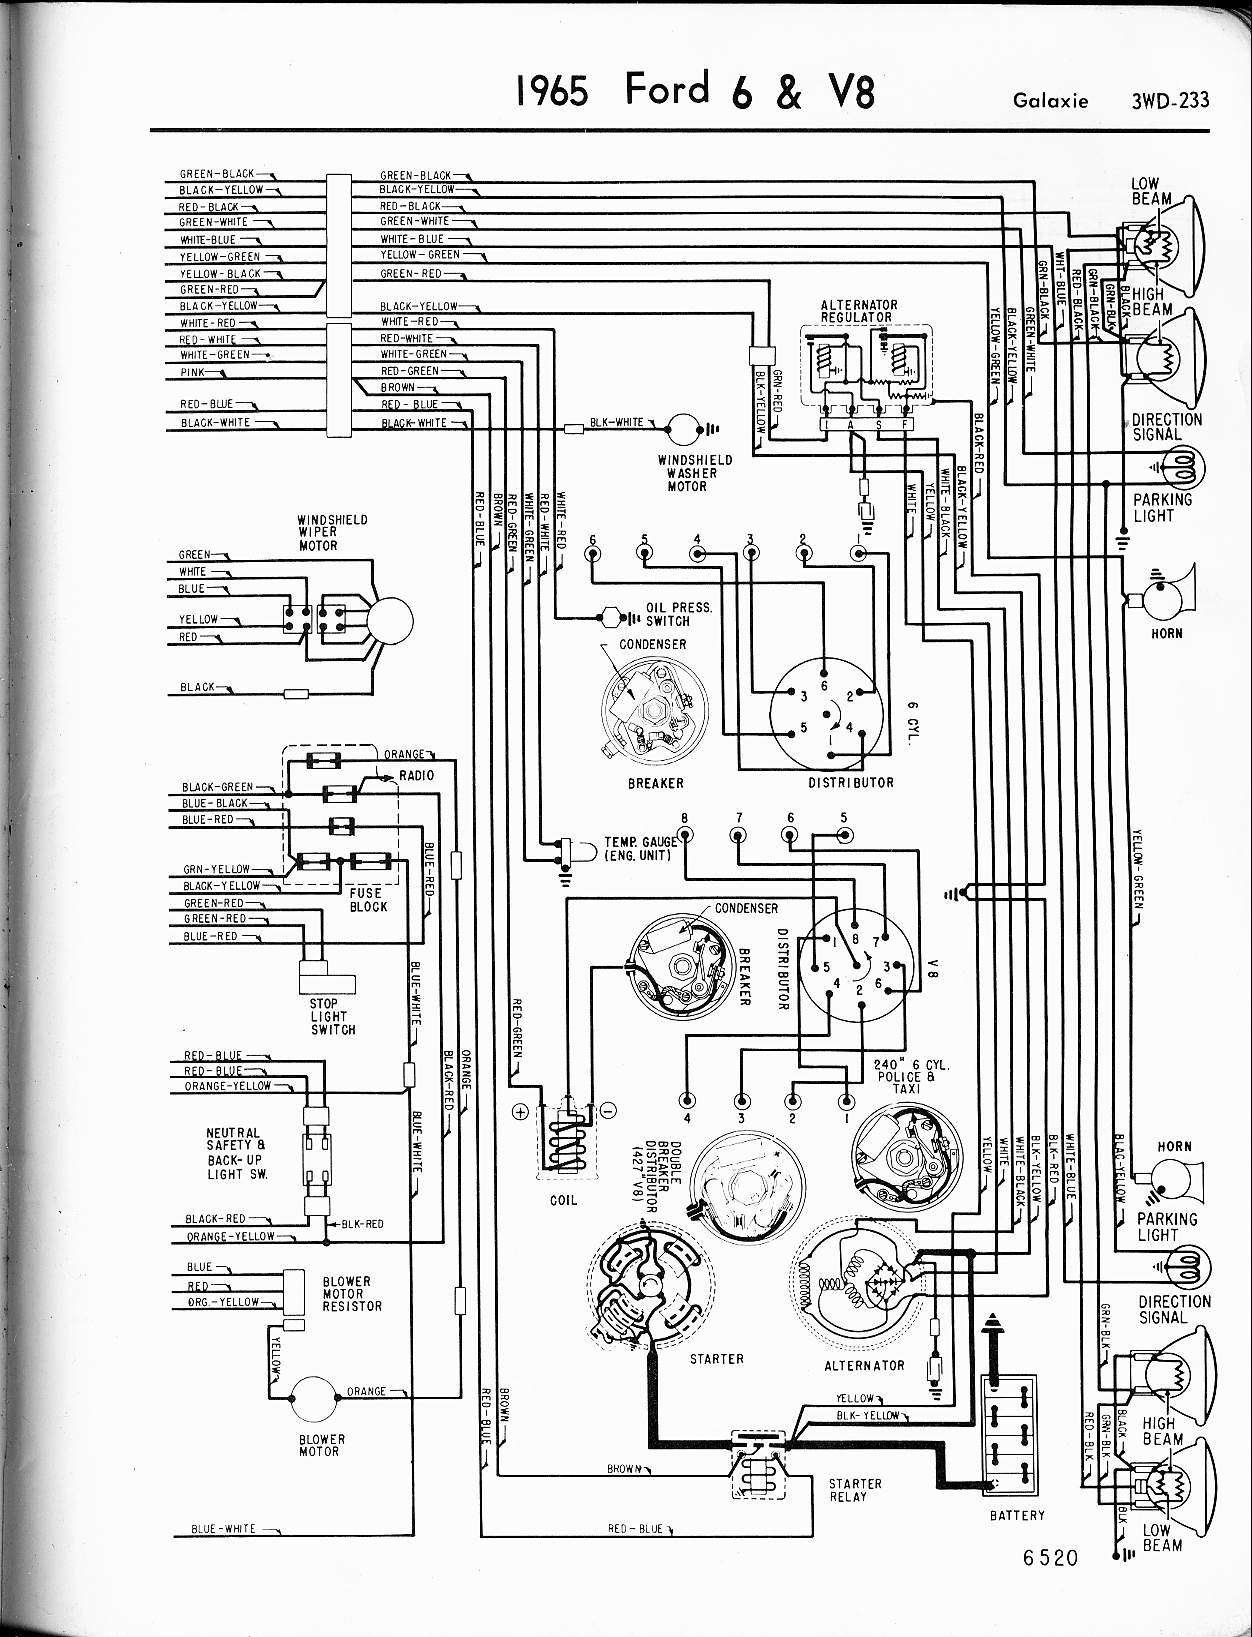 57 65 ford wiring diagrams rh oldcarmanualproject com Wiring Diagrams for 1966 Ford Pick Up V8 1966 Ford F-250 Wiring Diagram